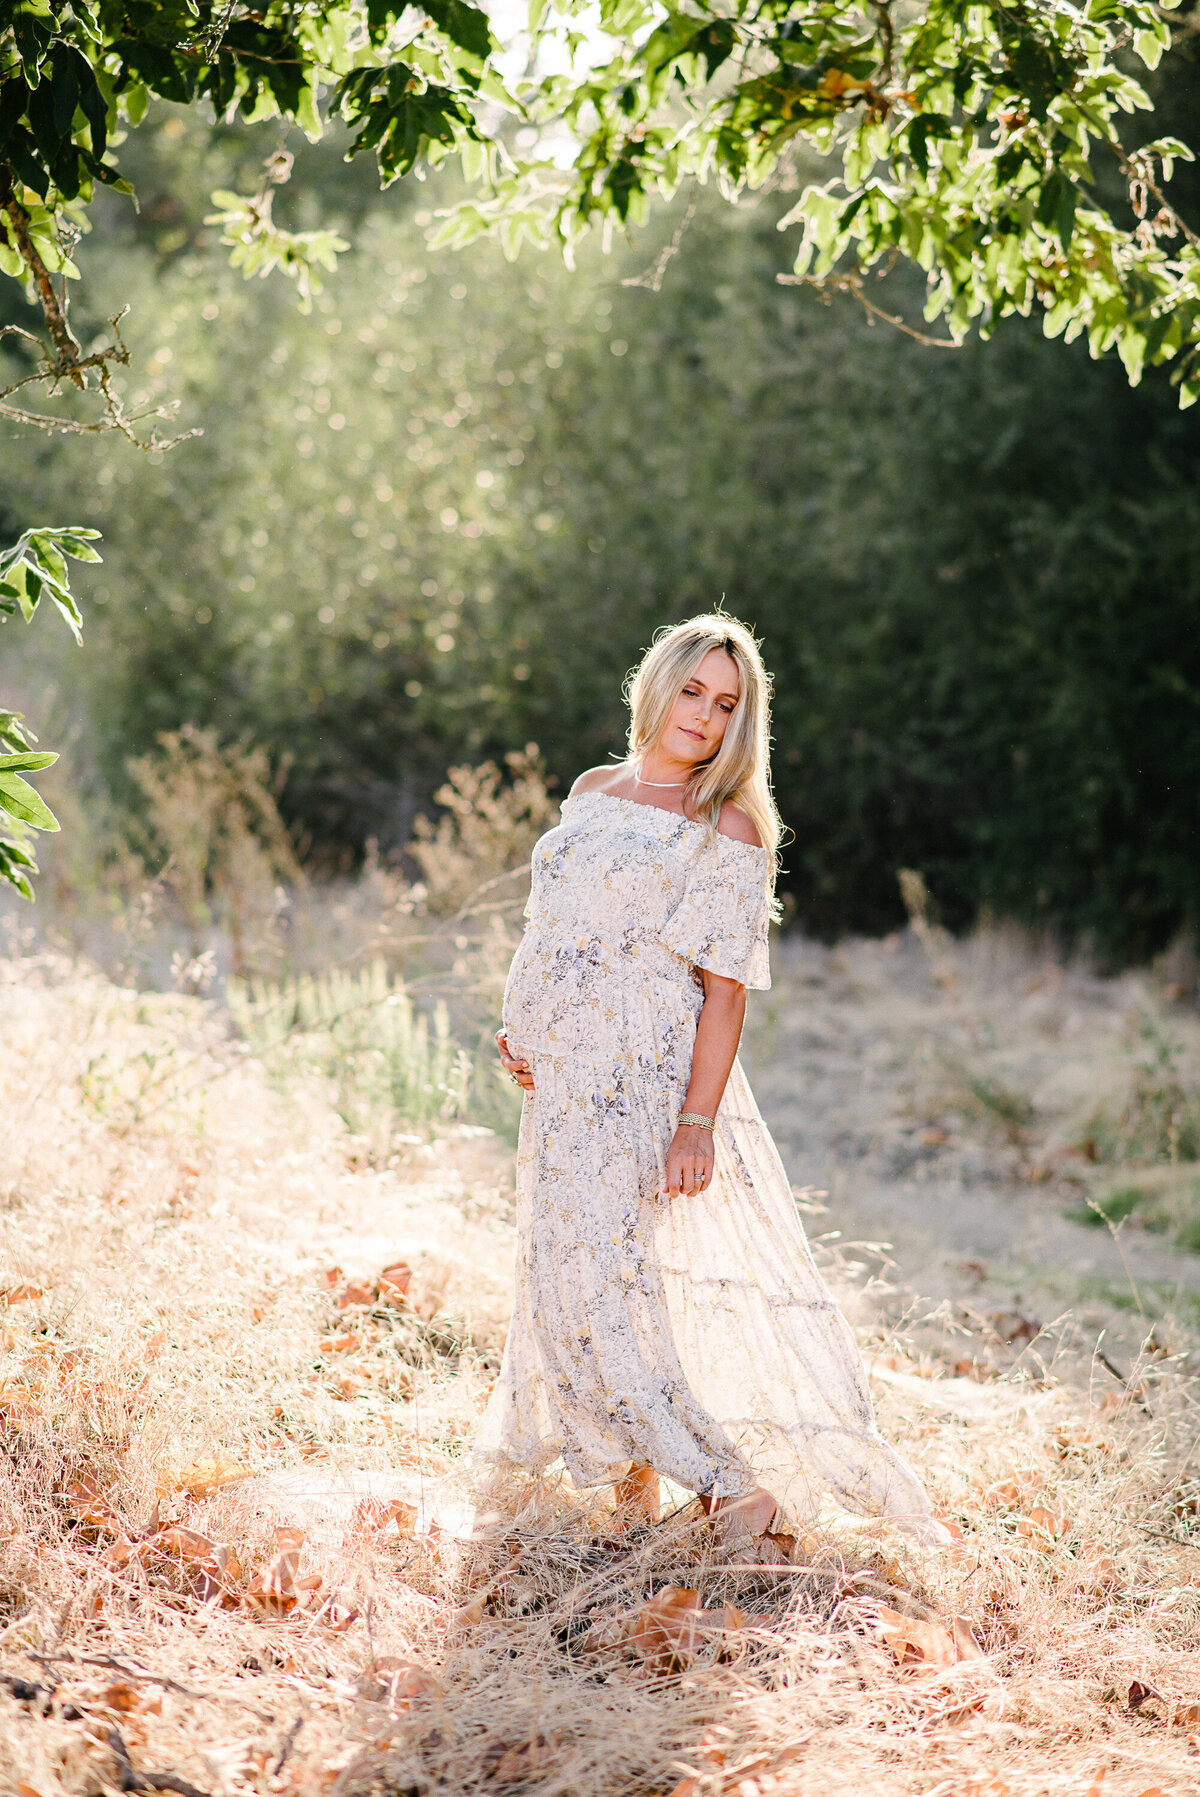 Encinitas Maternity Photographer-Marian Bear18